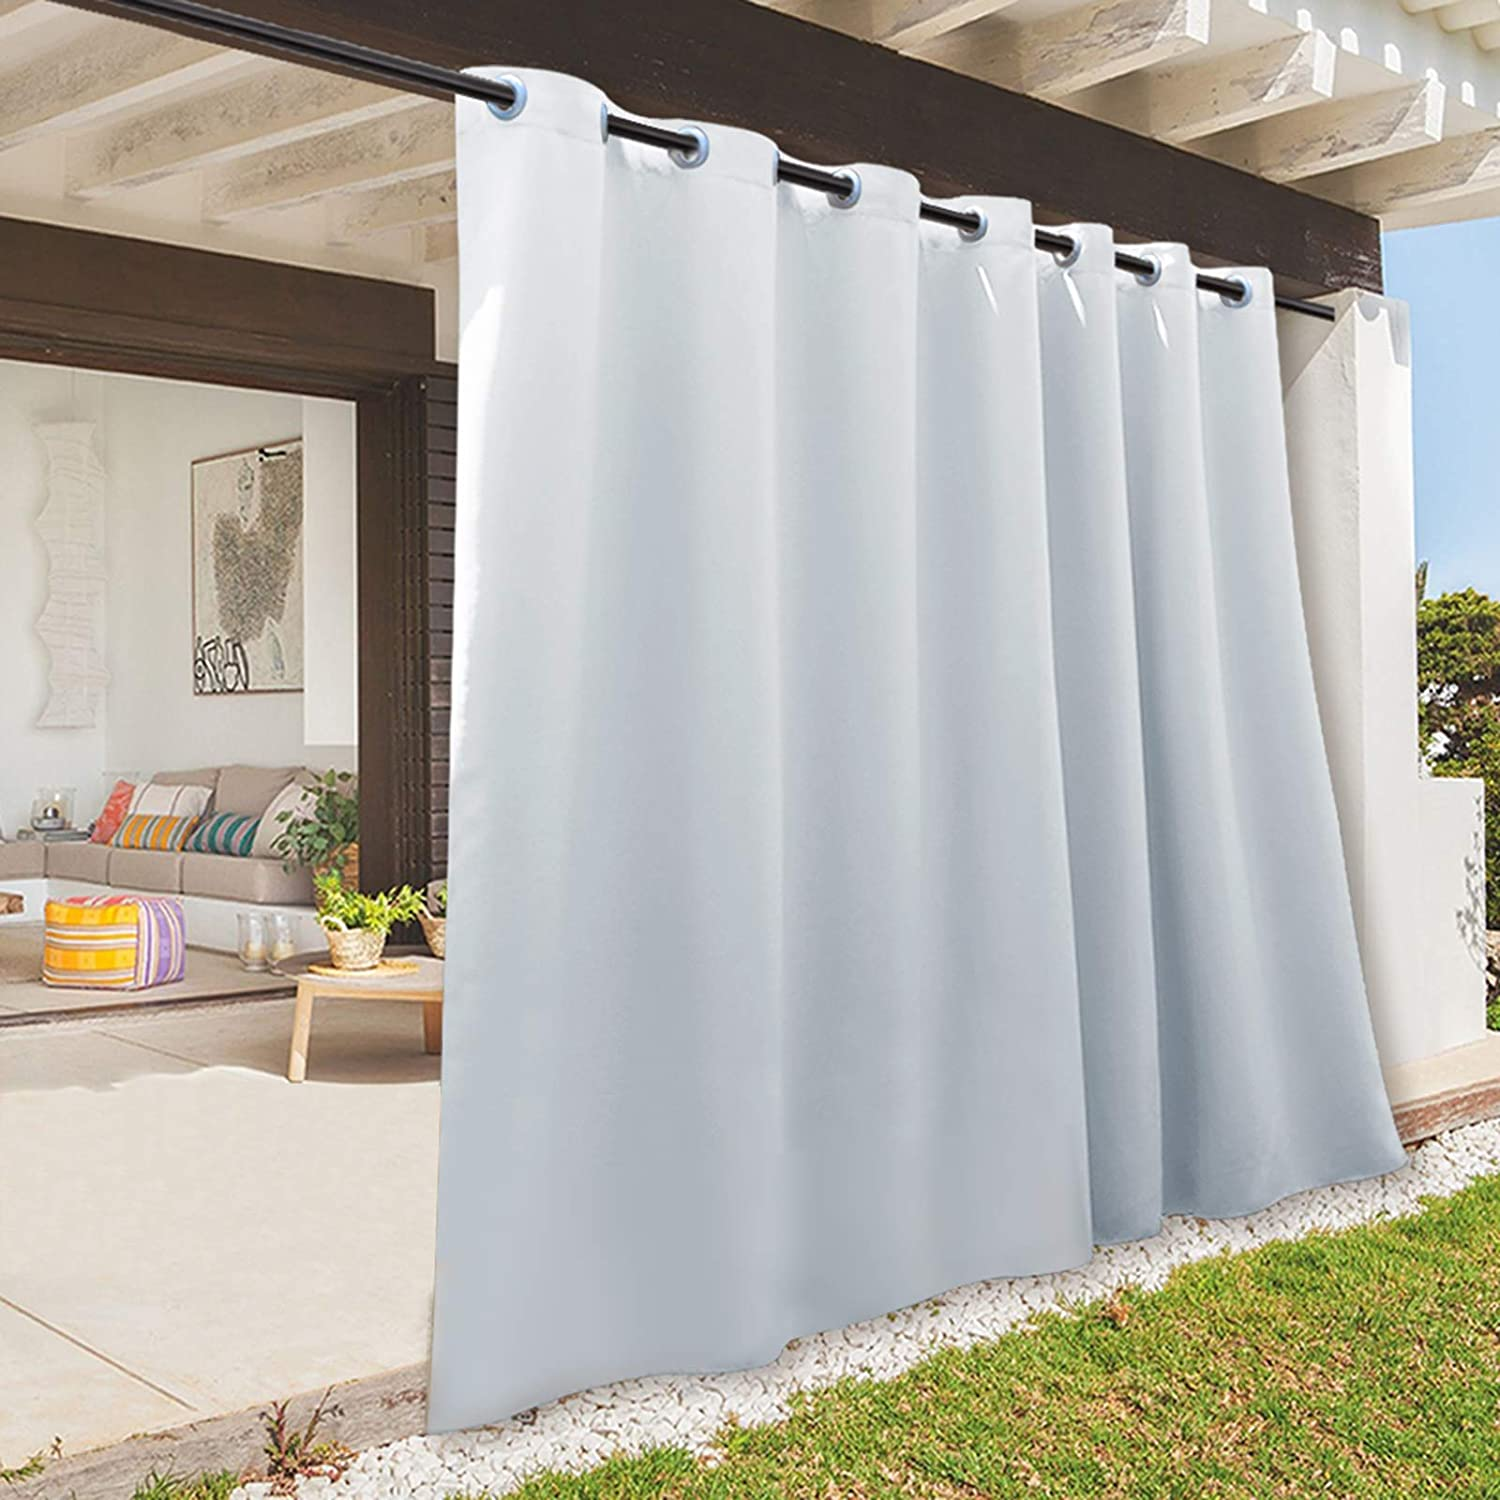 RYB HOME Extra Wide 100 inch Outdoor Curtains for Patio, Balcony Curtains Blind Light Glare Block Heat Diffuse Waterproof Panel for Cabana / Entertaining Space, 100 x 84 inches, 1 Pc, Grayish White